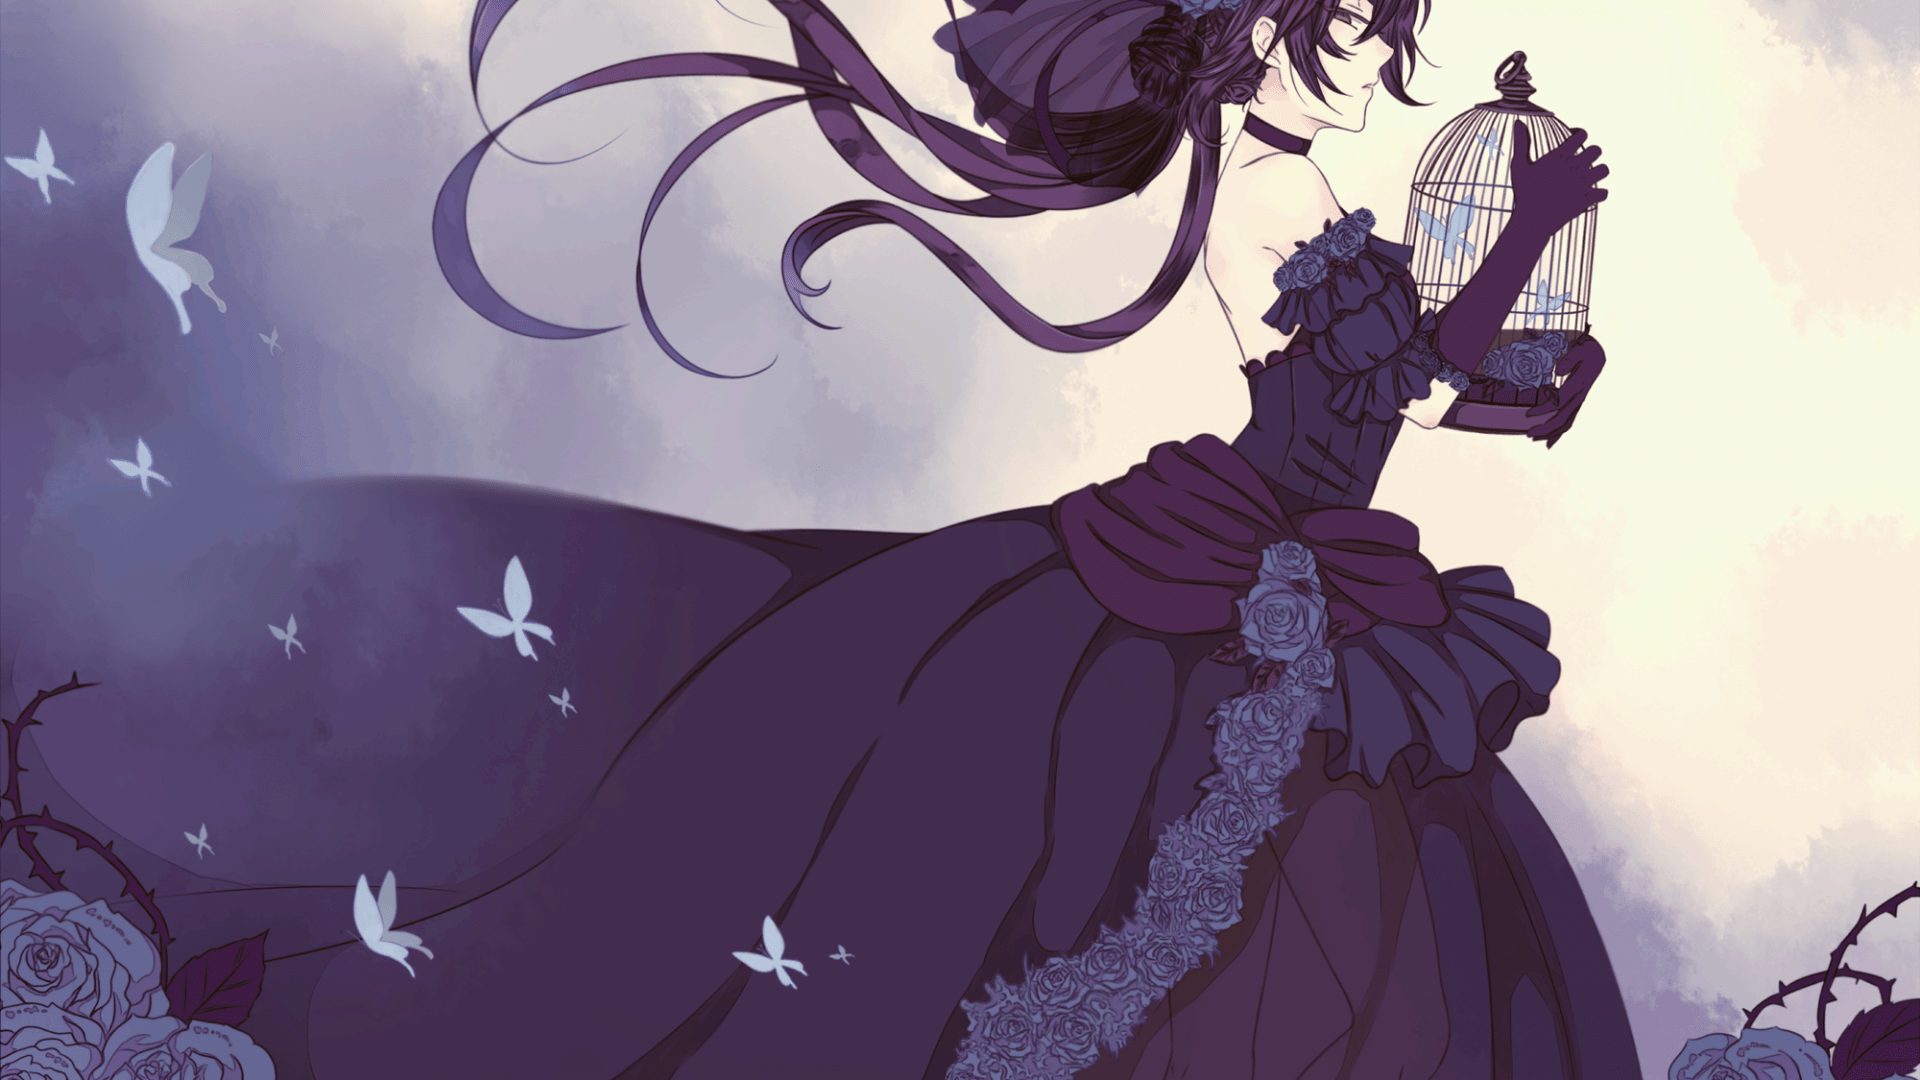 1920x1080 Pandora Hearts Alice Cage Butterflies Gothic Dress Profile View ...